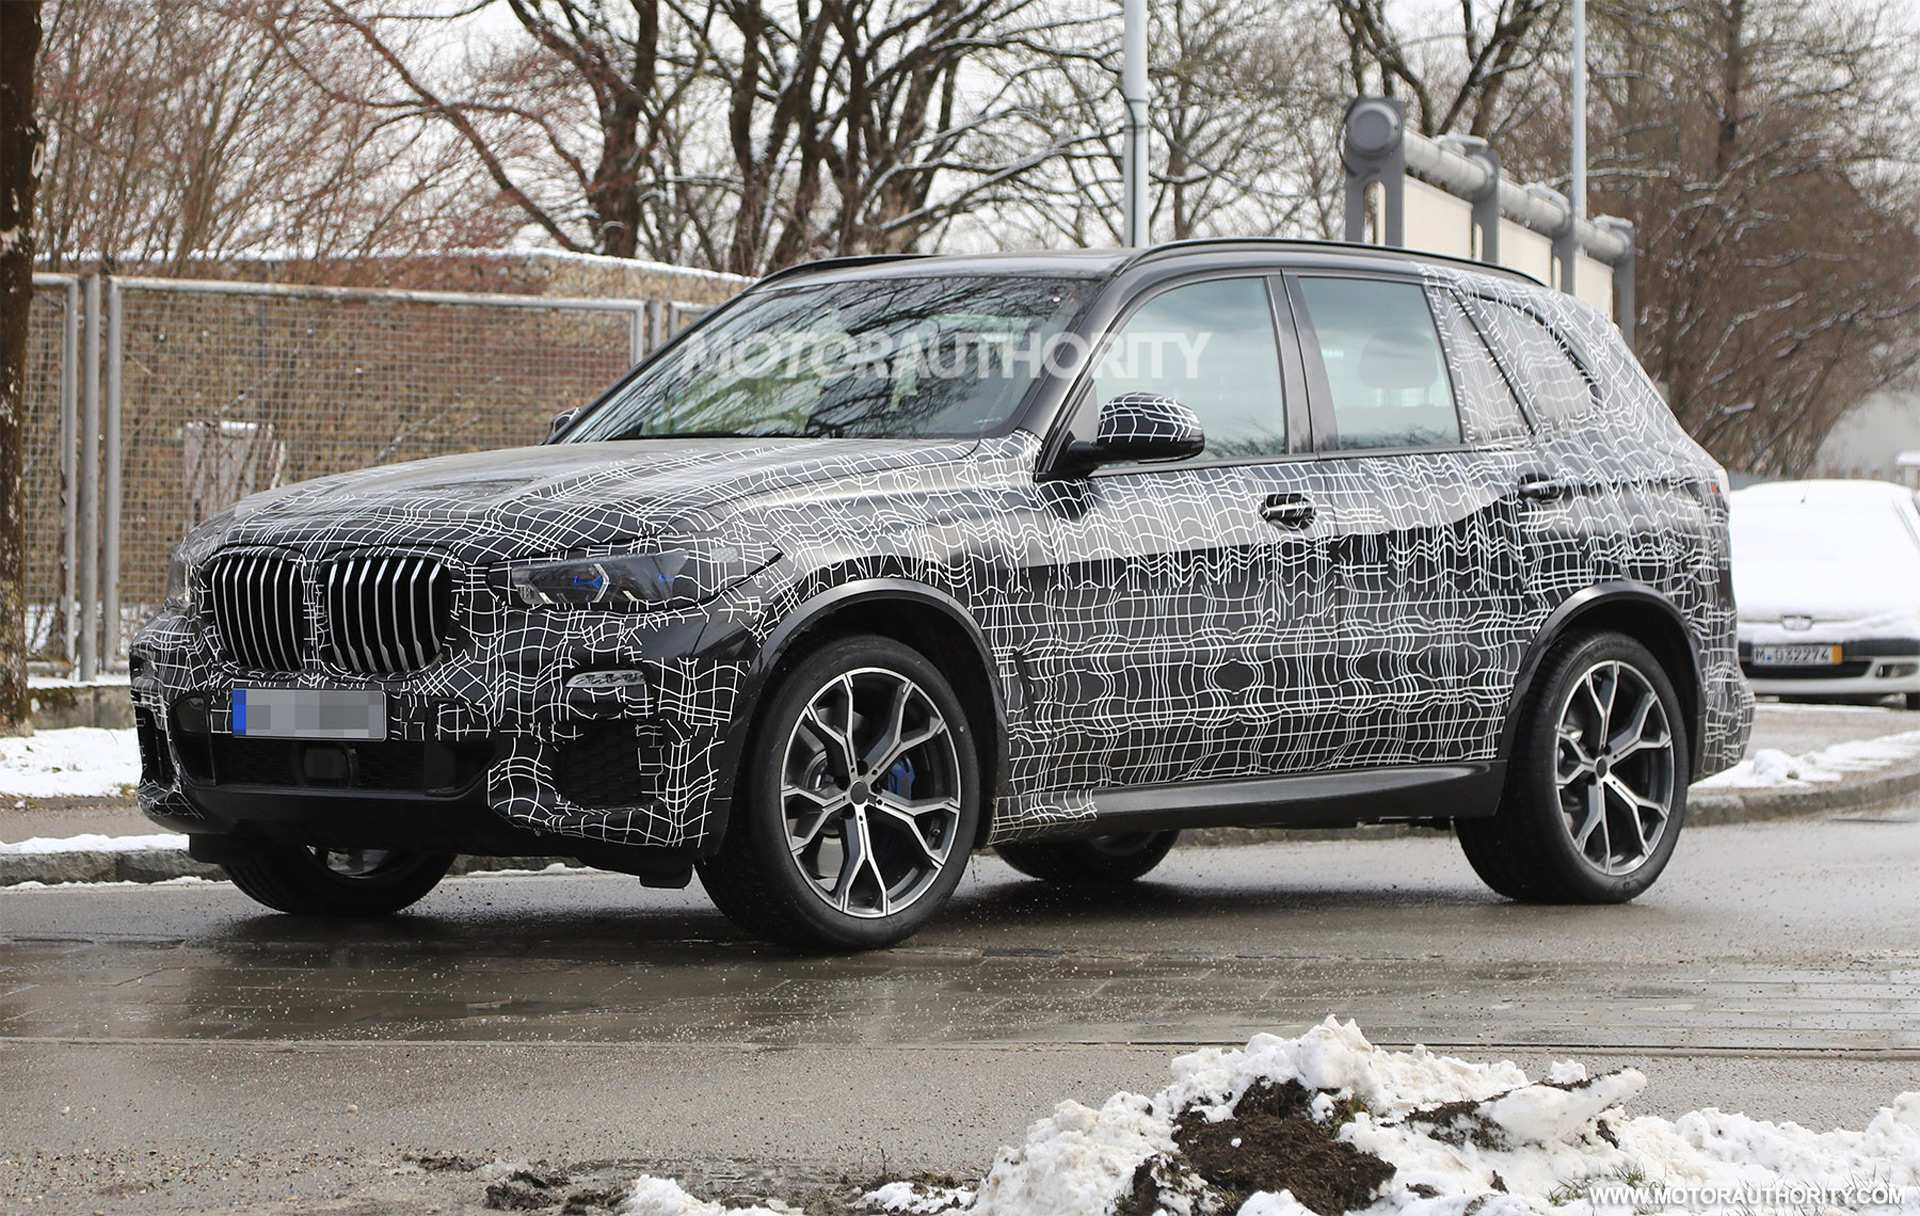 35 The Best Next Gen BMW X5 Suv Speed Test